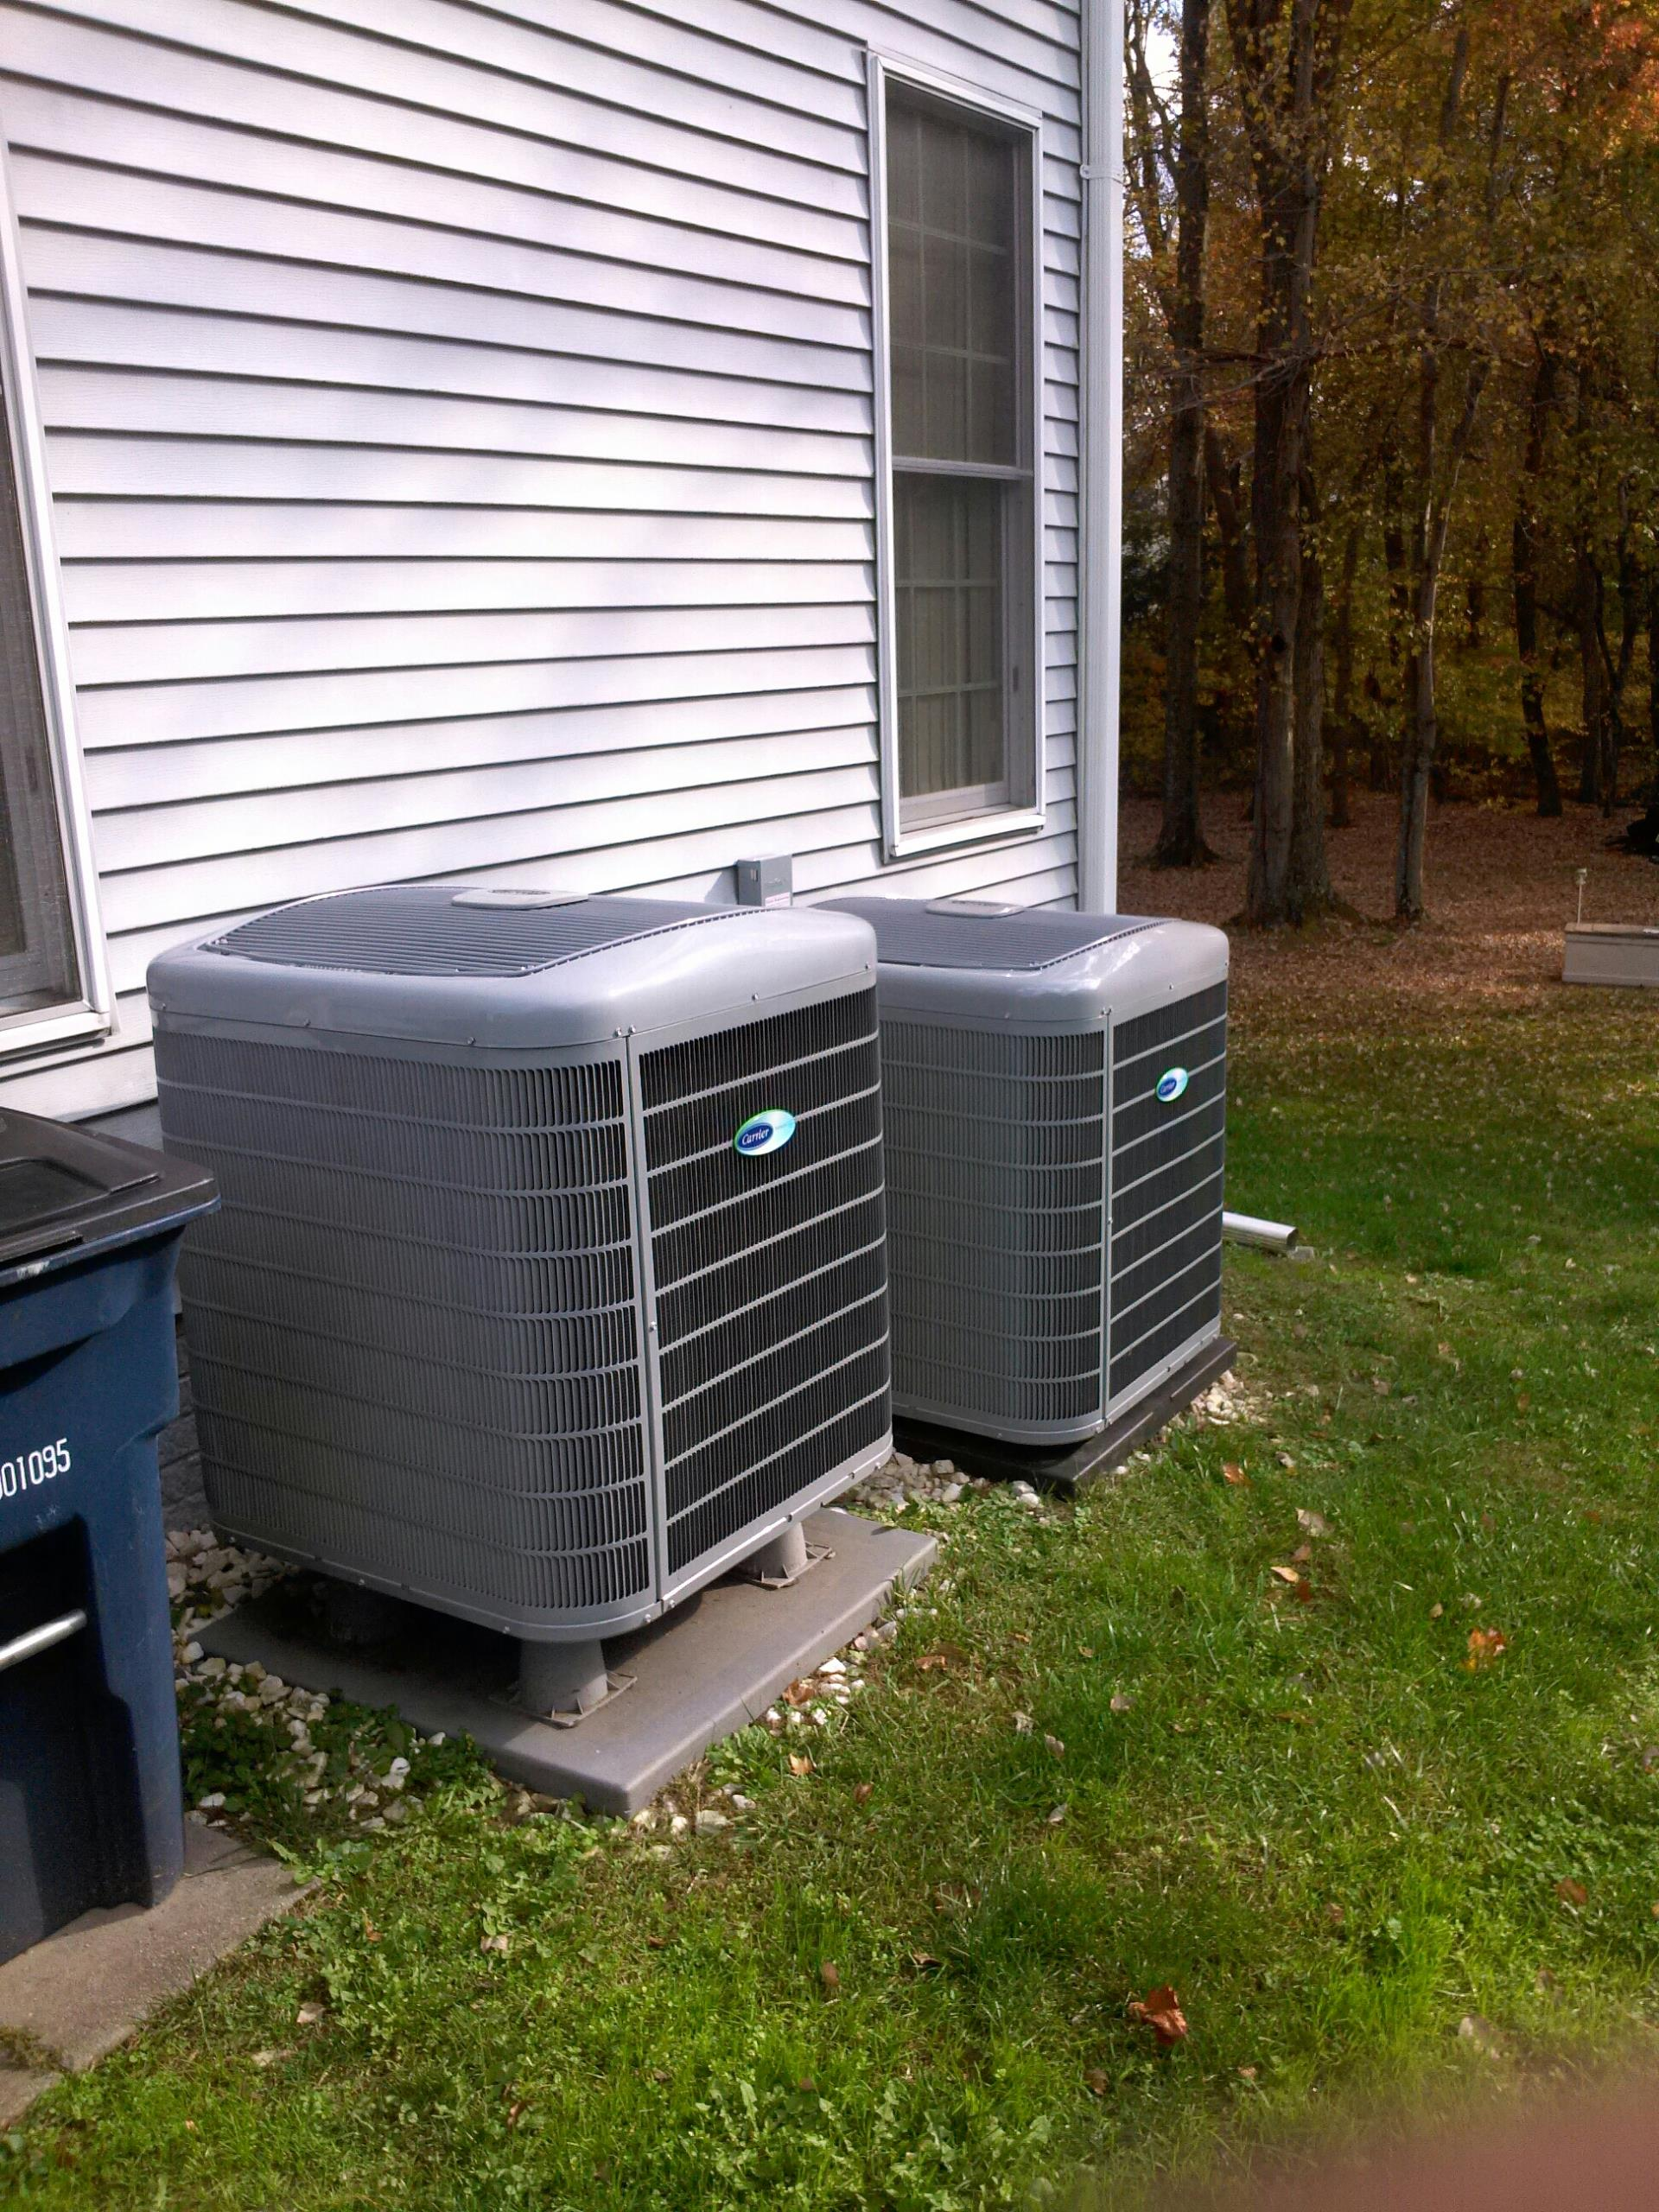 Crownsville, MD - Carrier heat pump AC air conditioning & heating system installation repair service call in Crownsville Maryland 21032